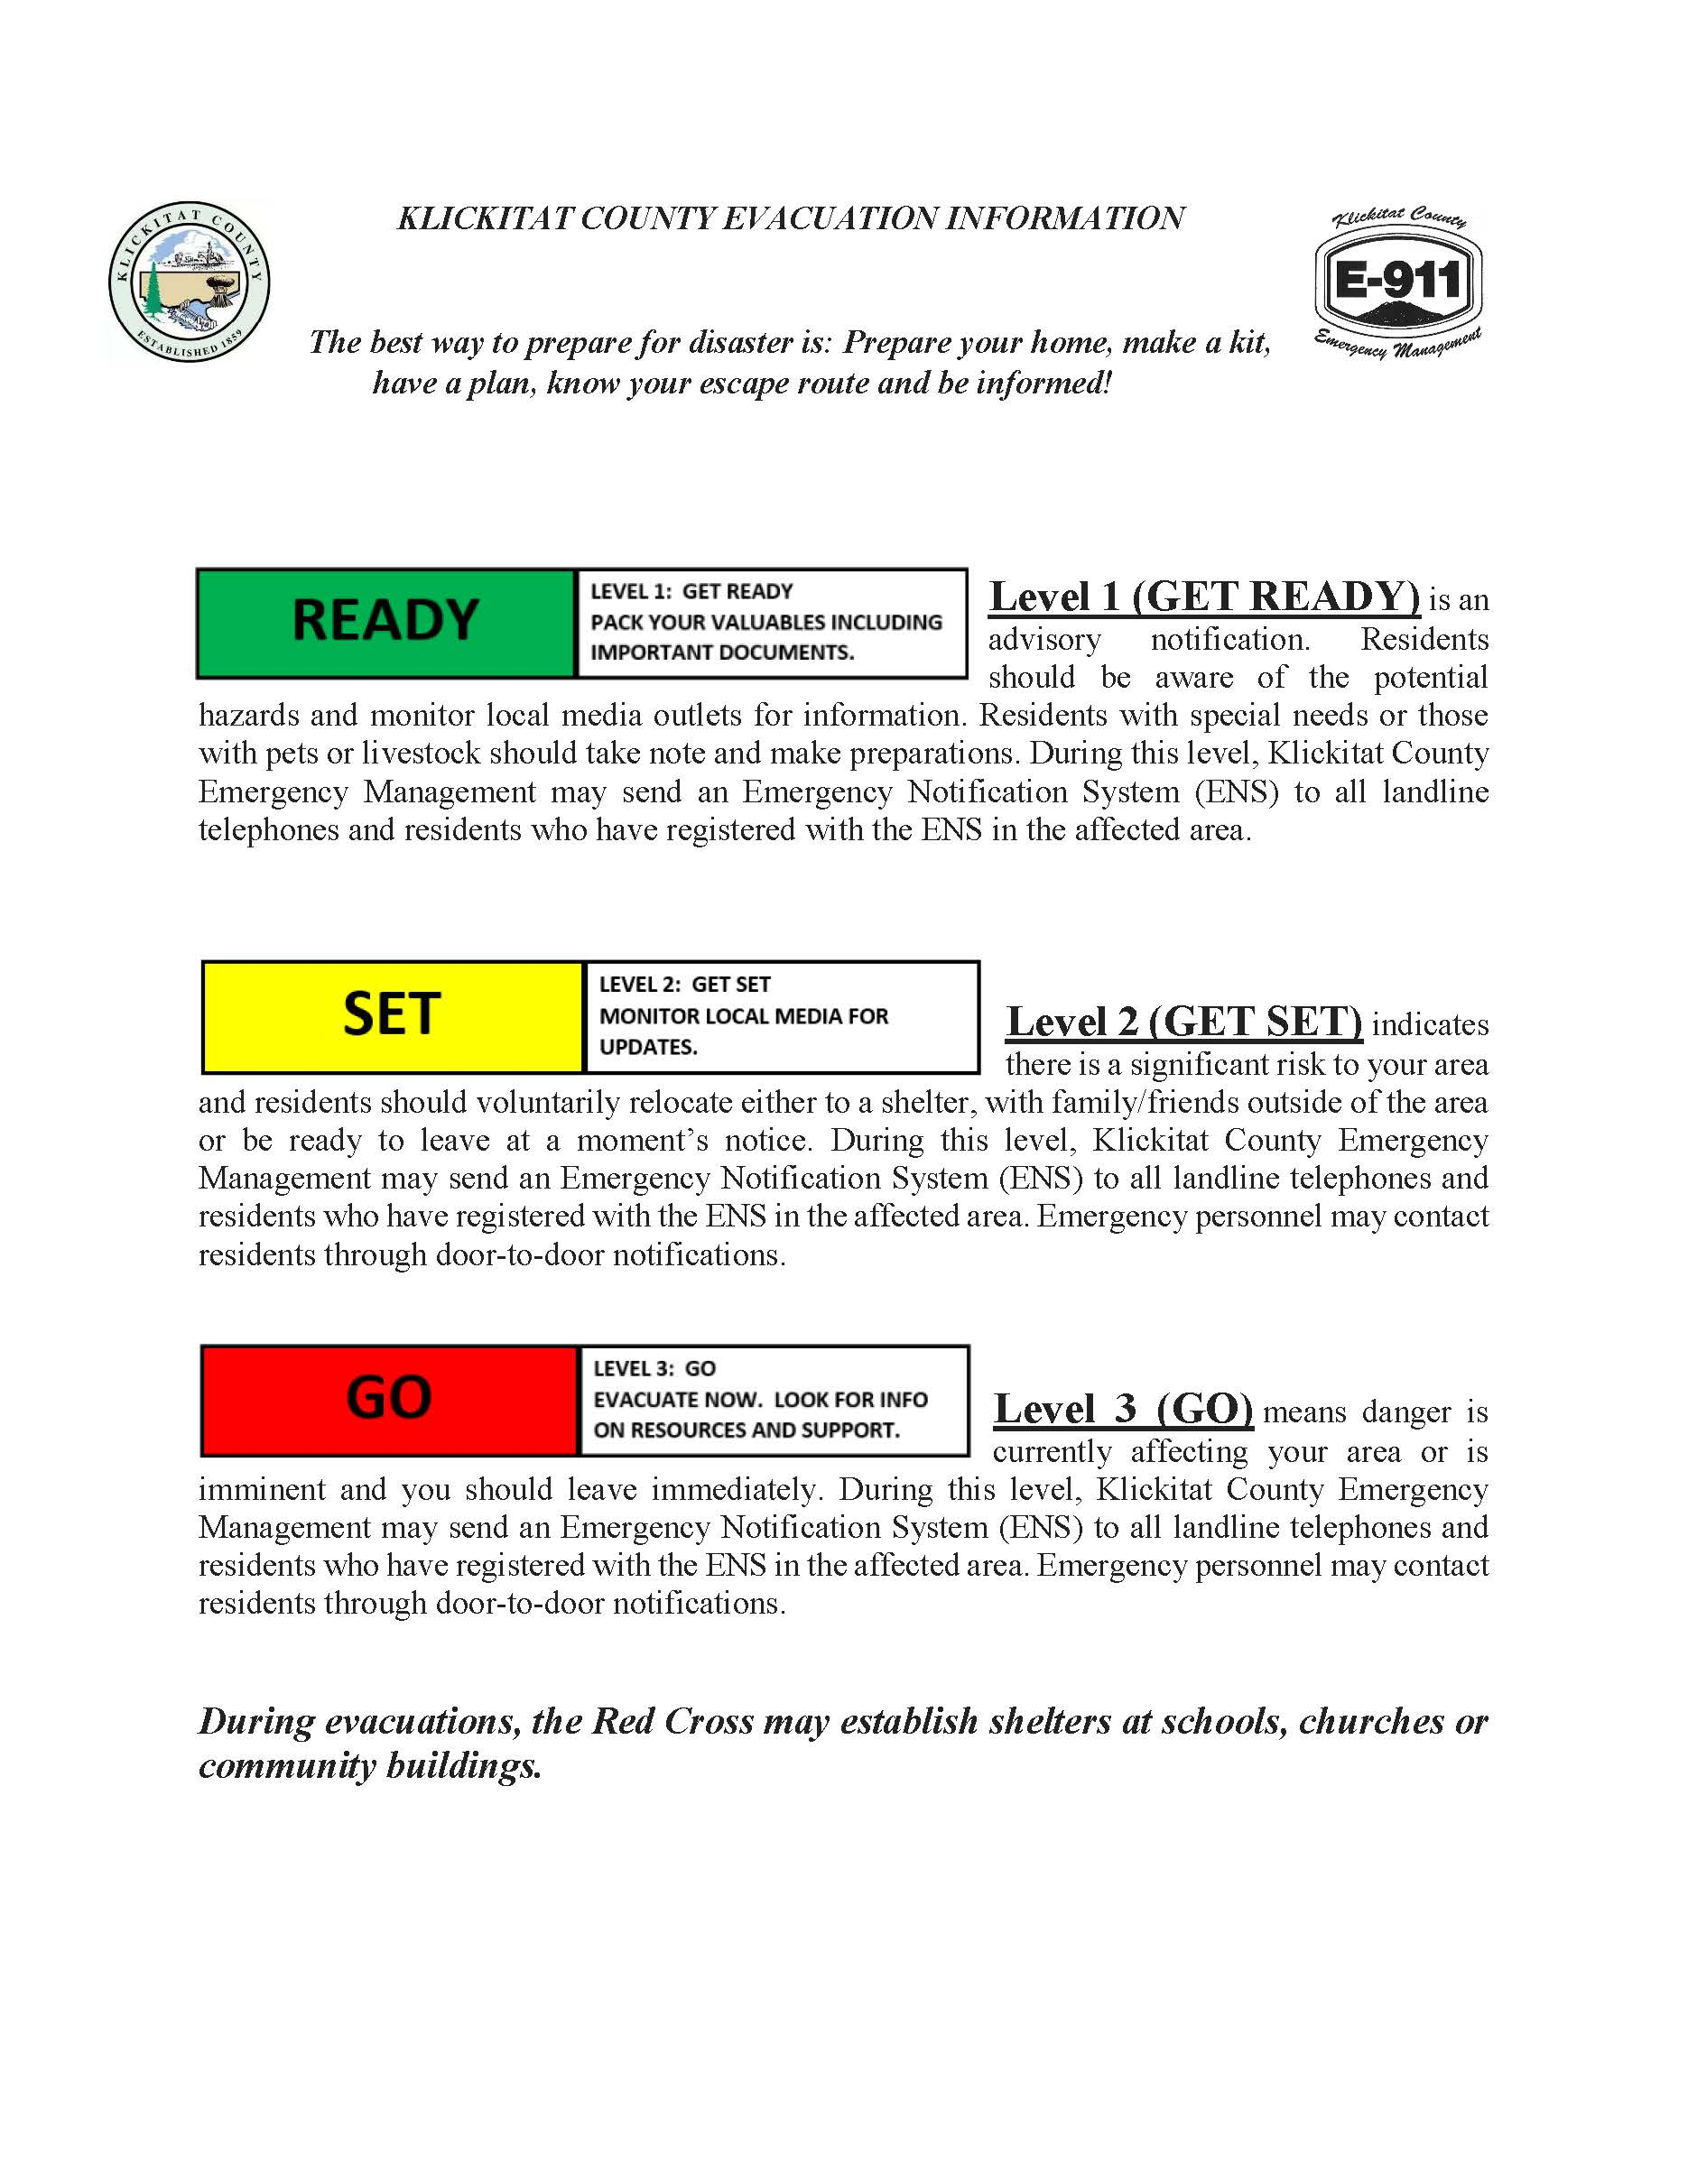 Evacuation Information Flyer